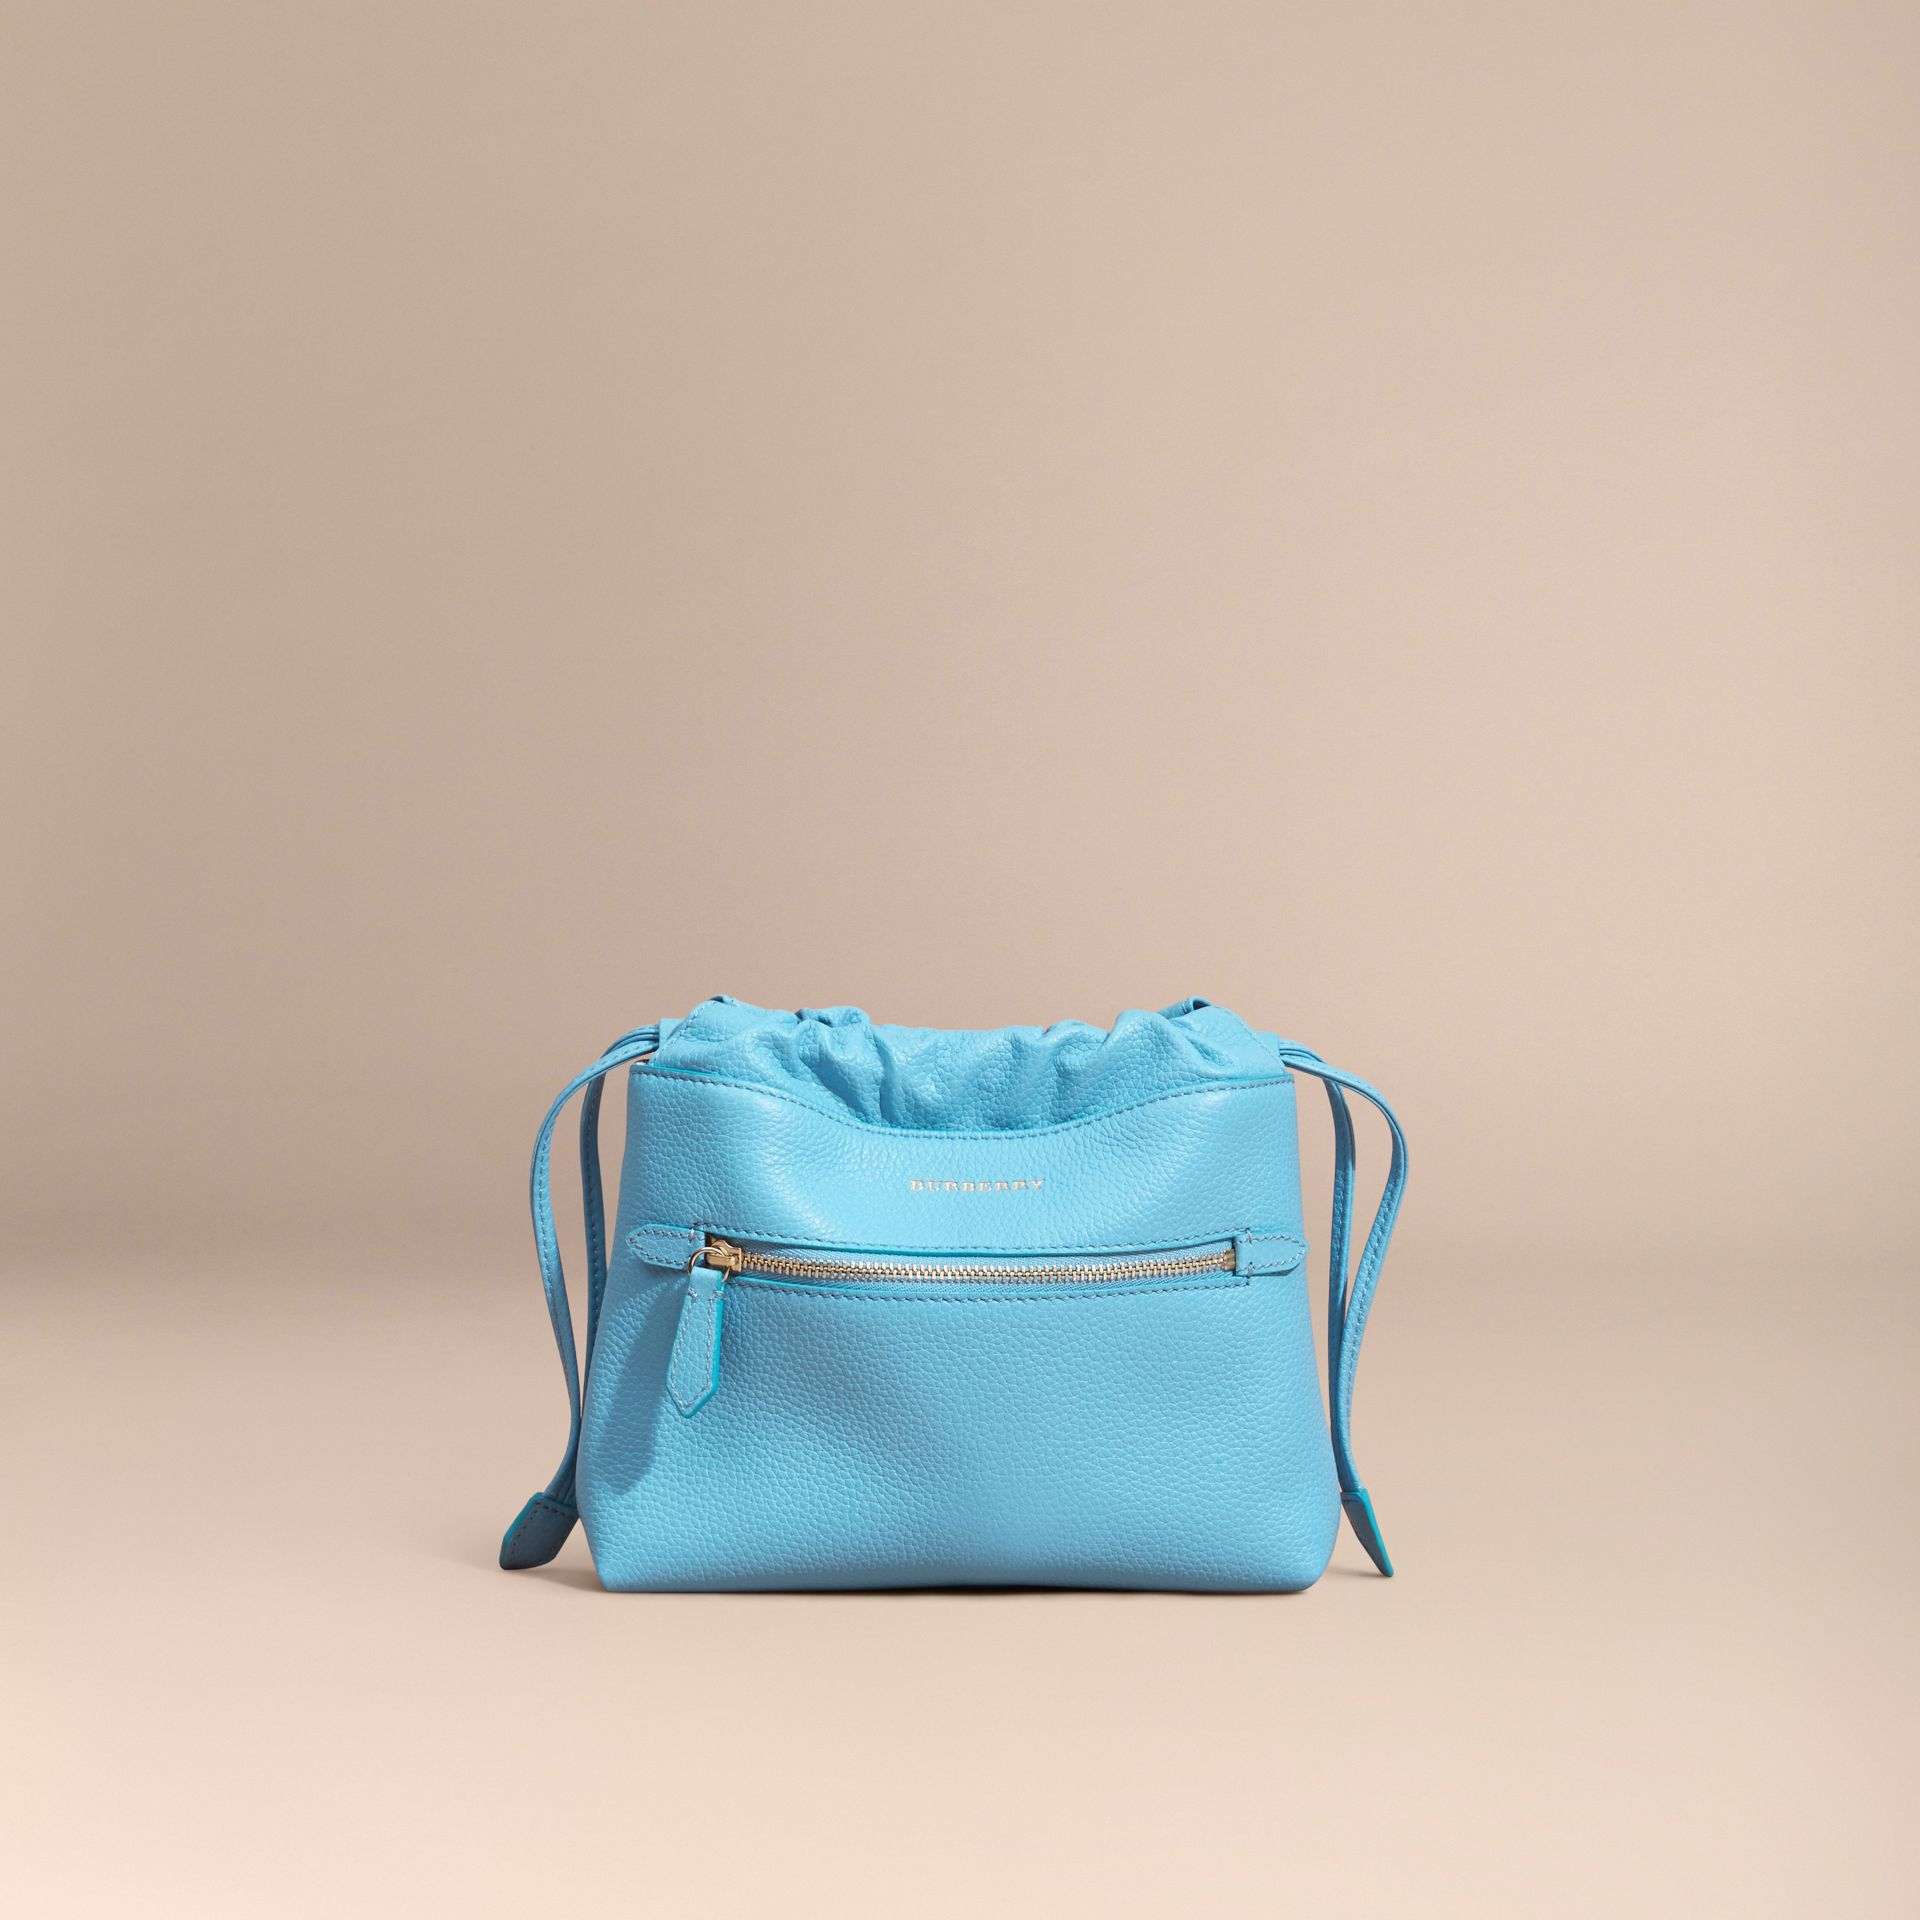 Bright mineral blue The Mini Crush in Grainy Leather Bright Mineral Blue - gallery image 5